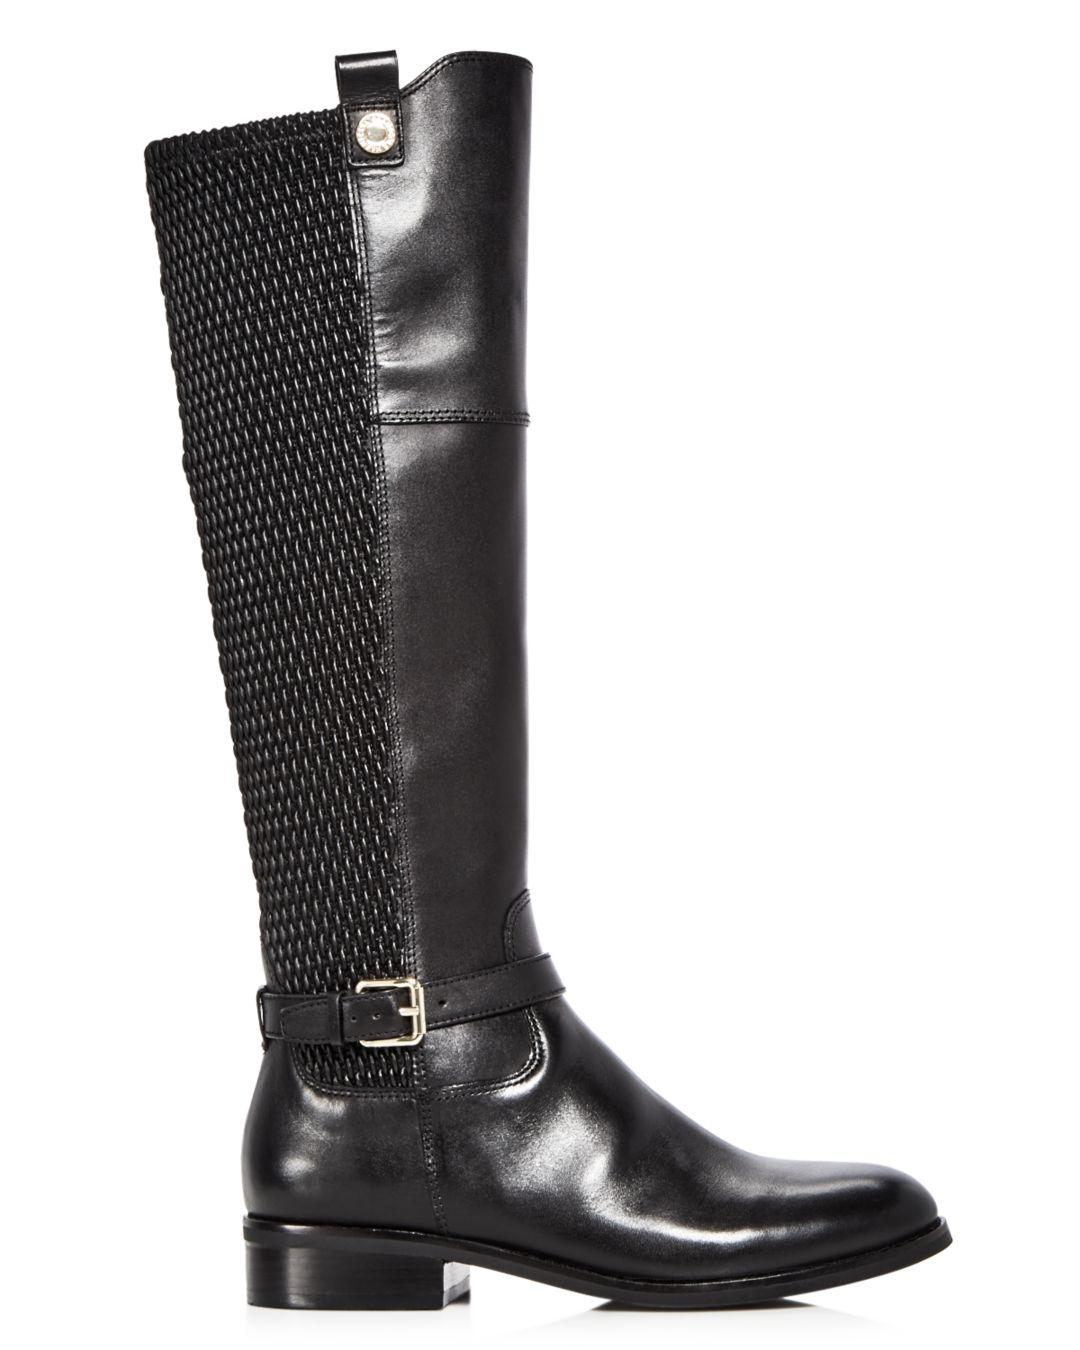 Cole Haan Women's Galina Leather Tall Boots in Black